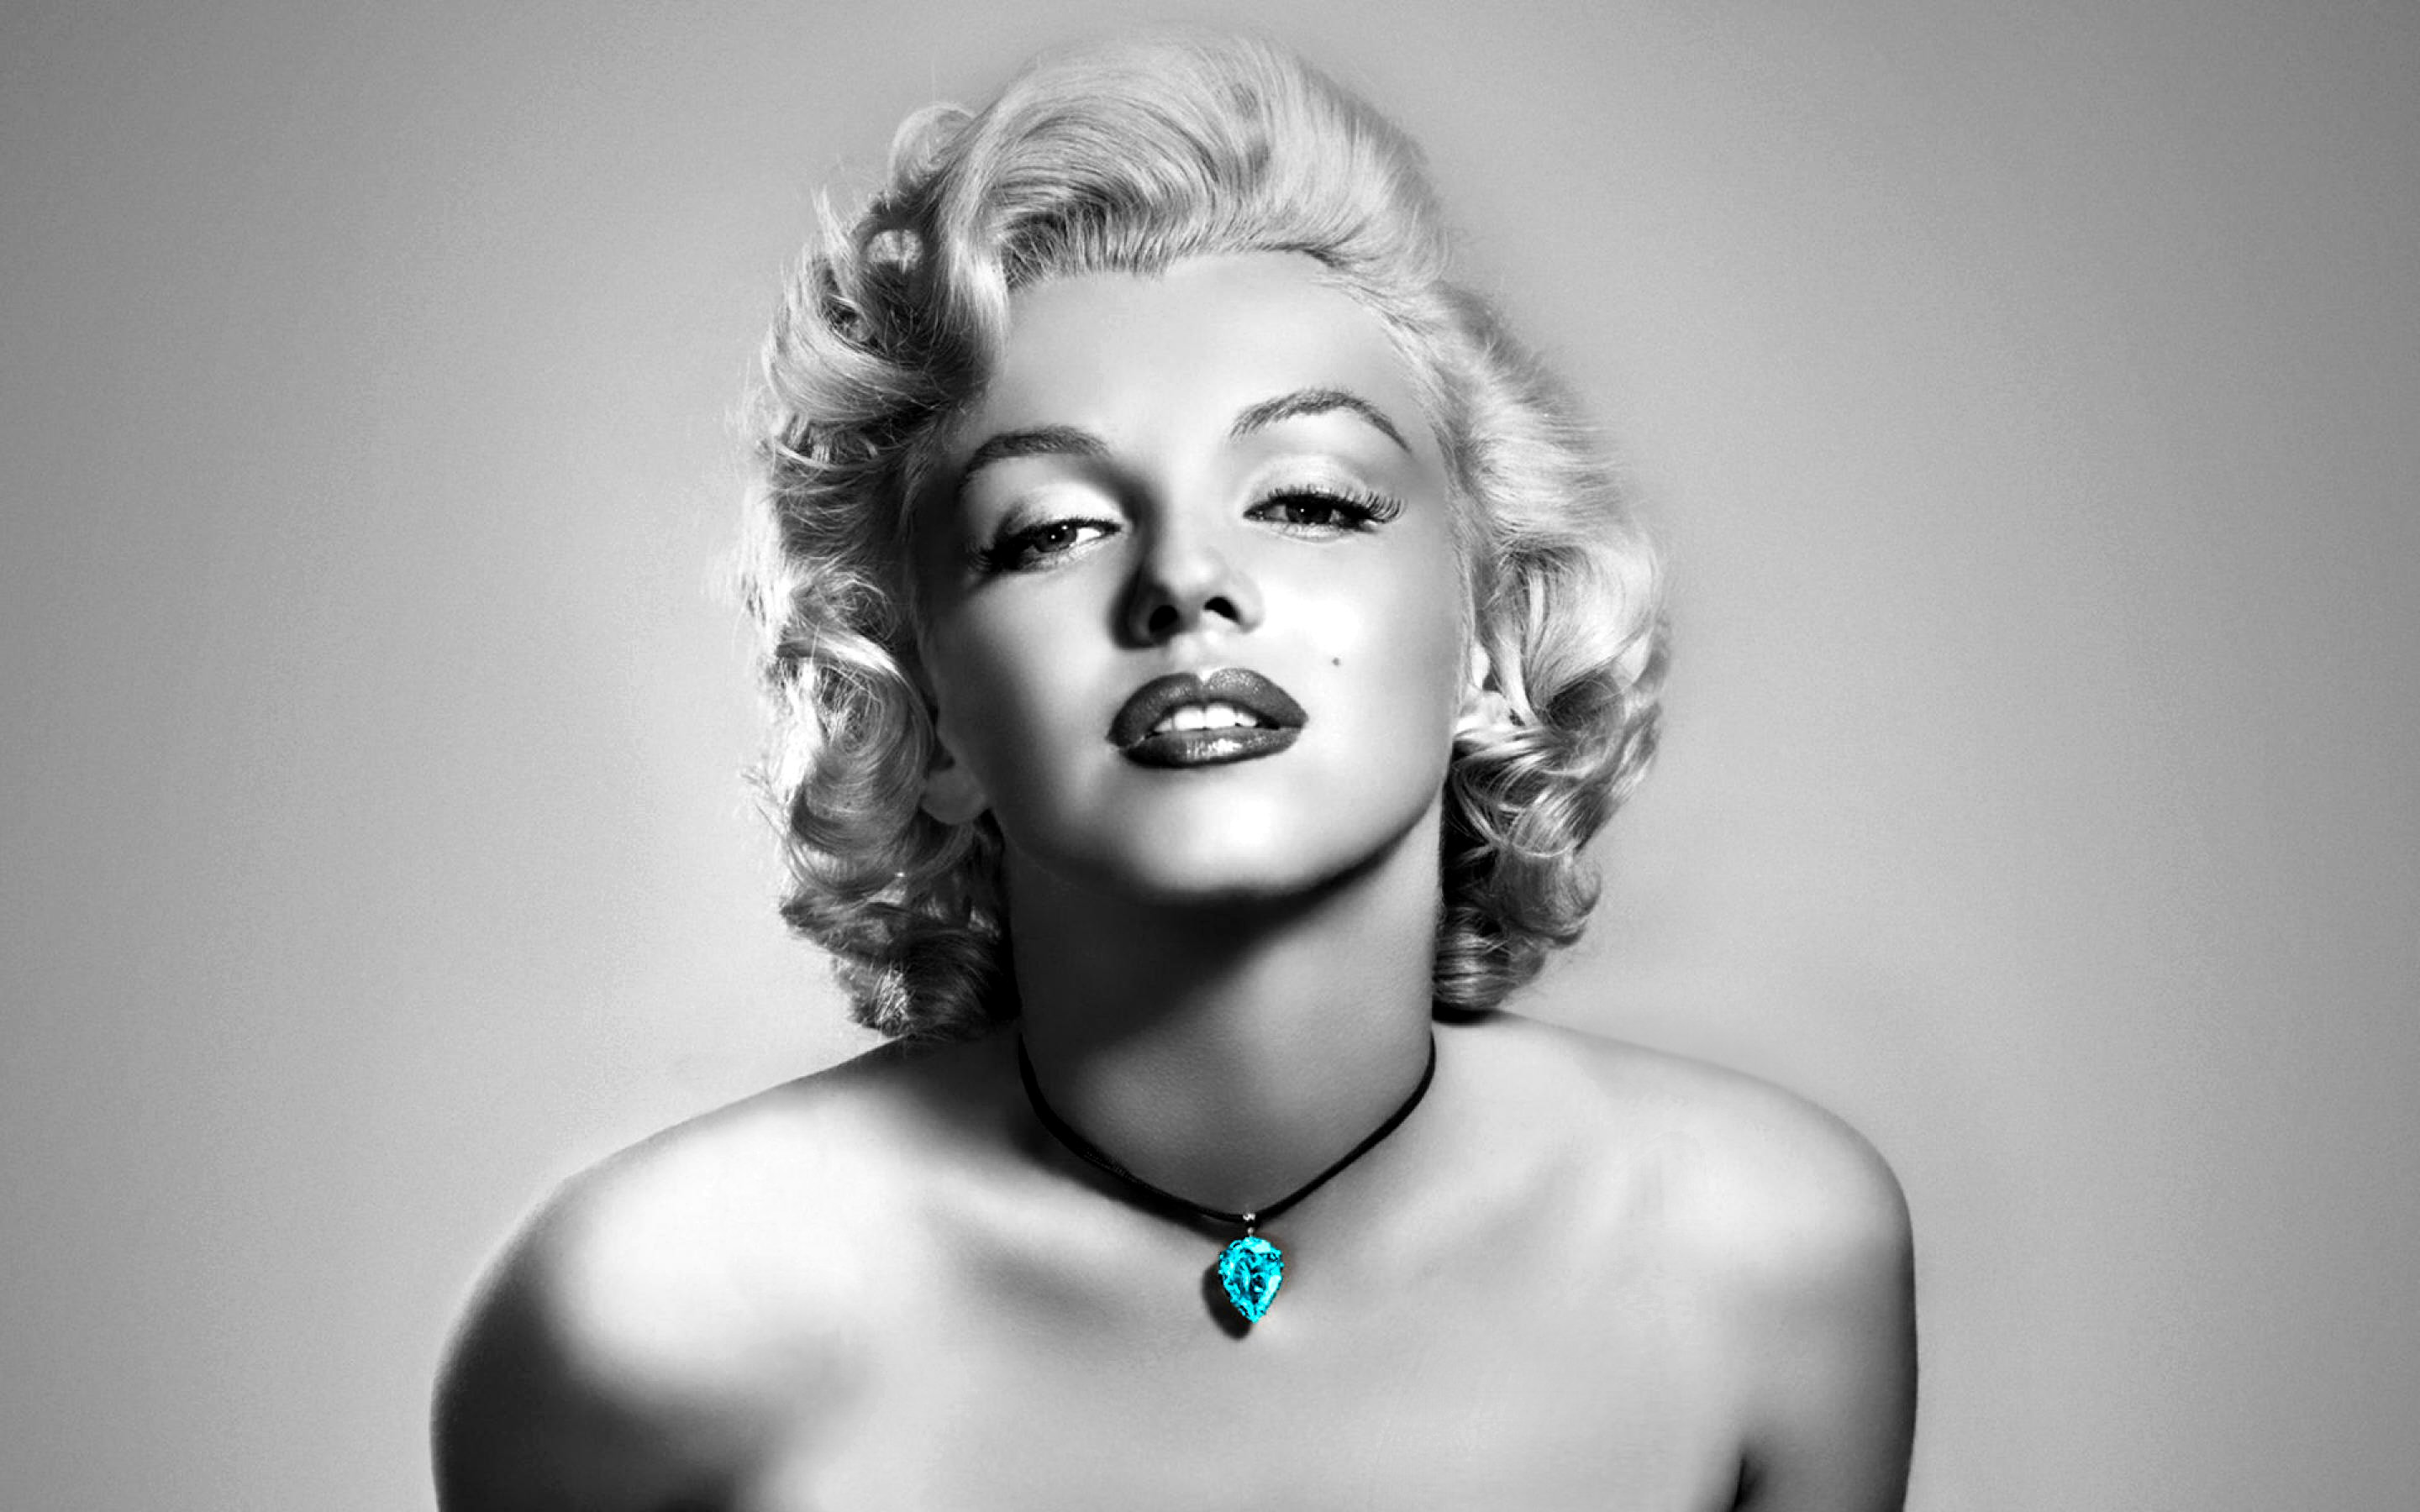 marilyn monroe wallpapers high resolution and quality download